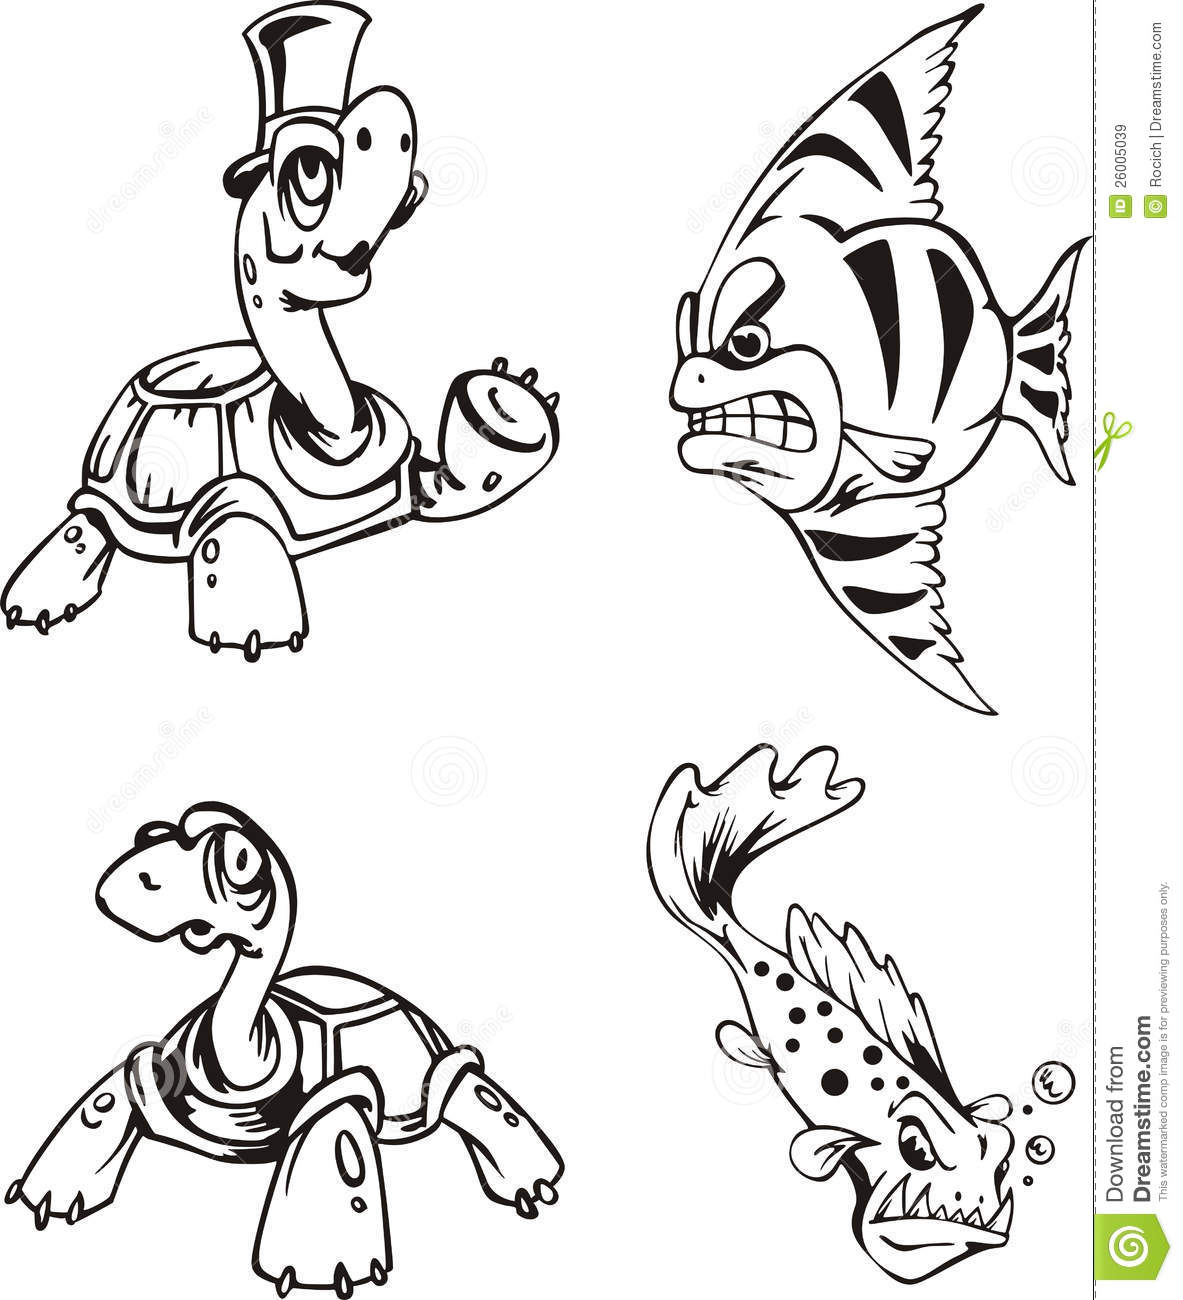 fish and turtle cartoons stock vector illustration of fish 26005039